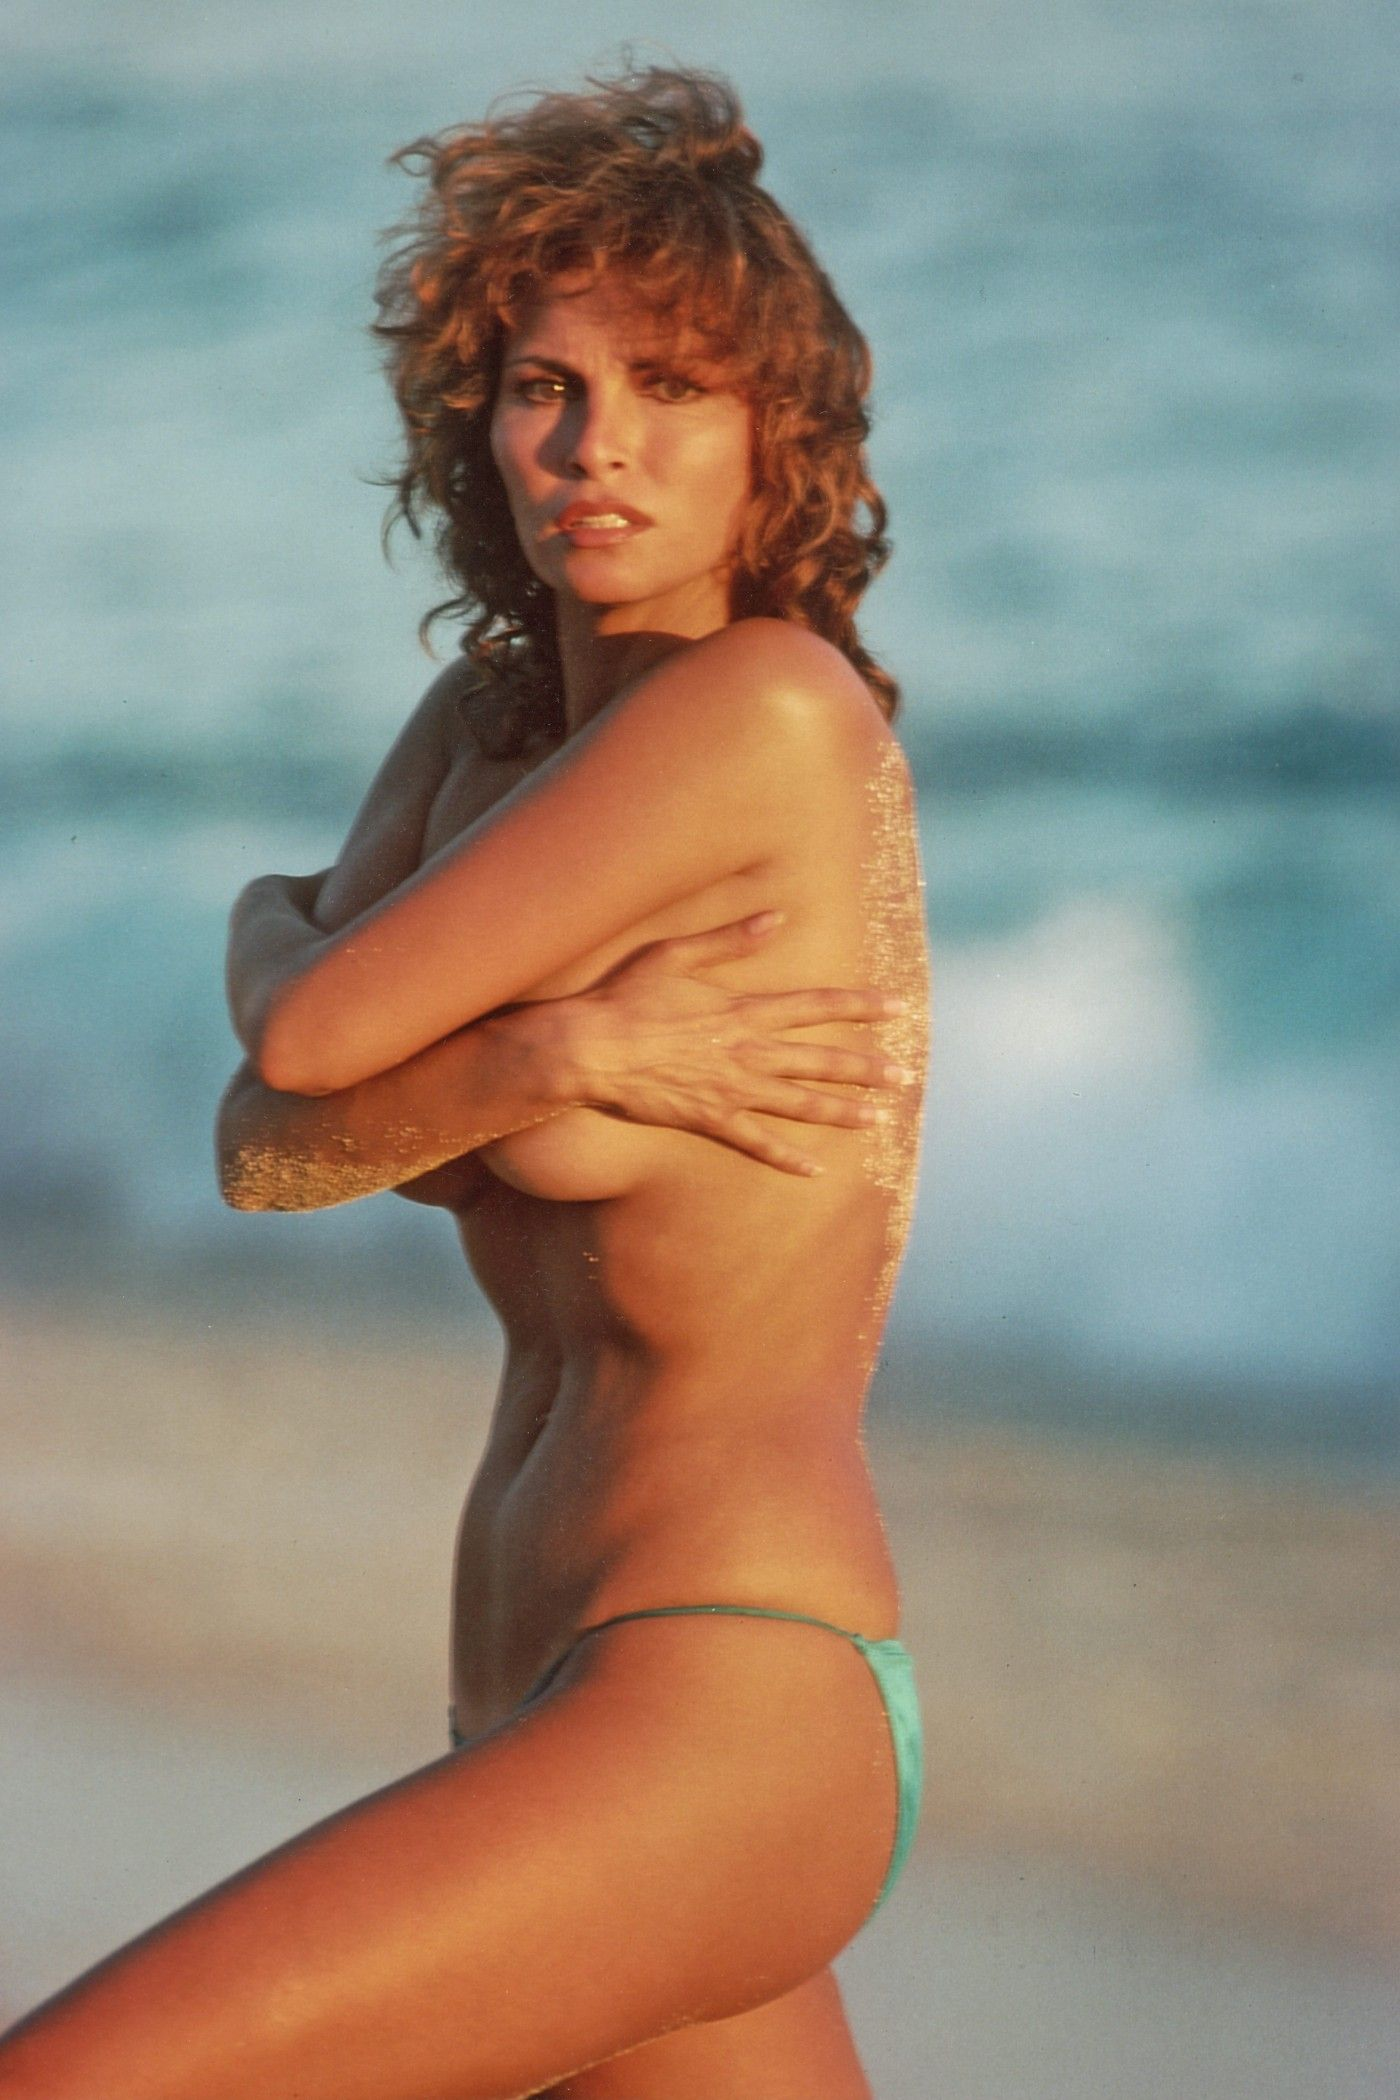 naked-photos-of-raquel-welch-sexy-female